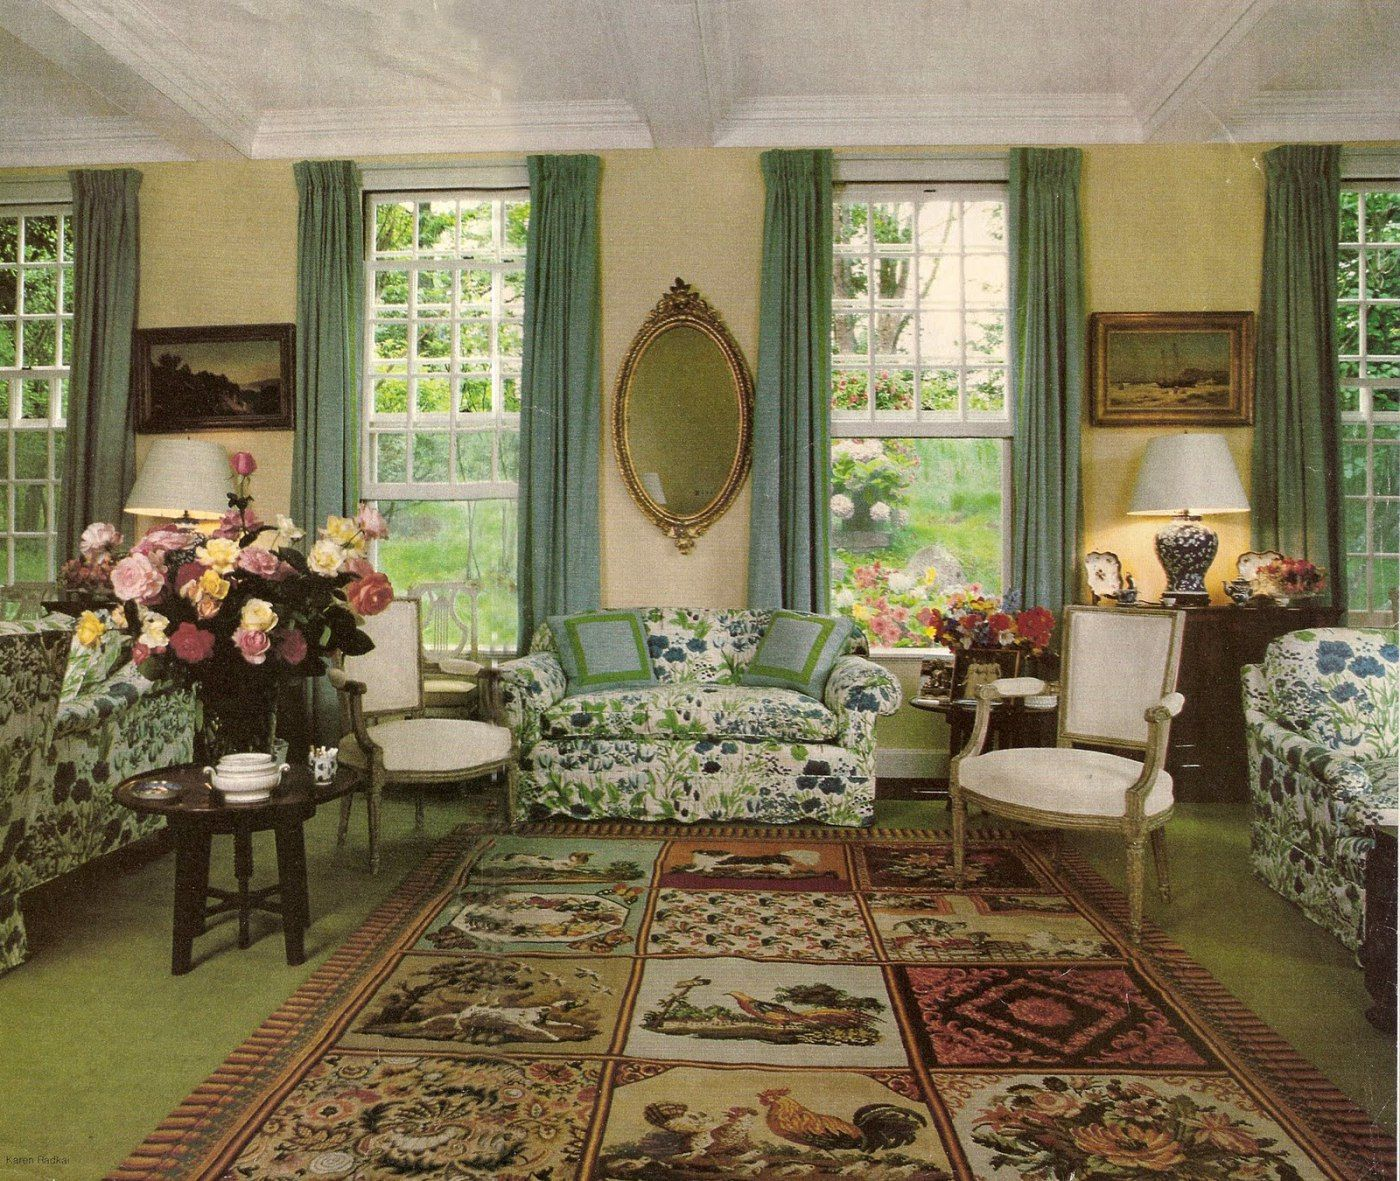 The Living Room At John And Brooke Astor's Maine Summer